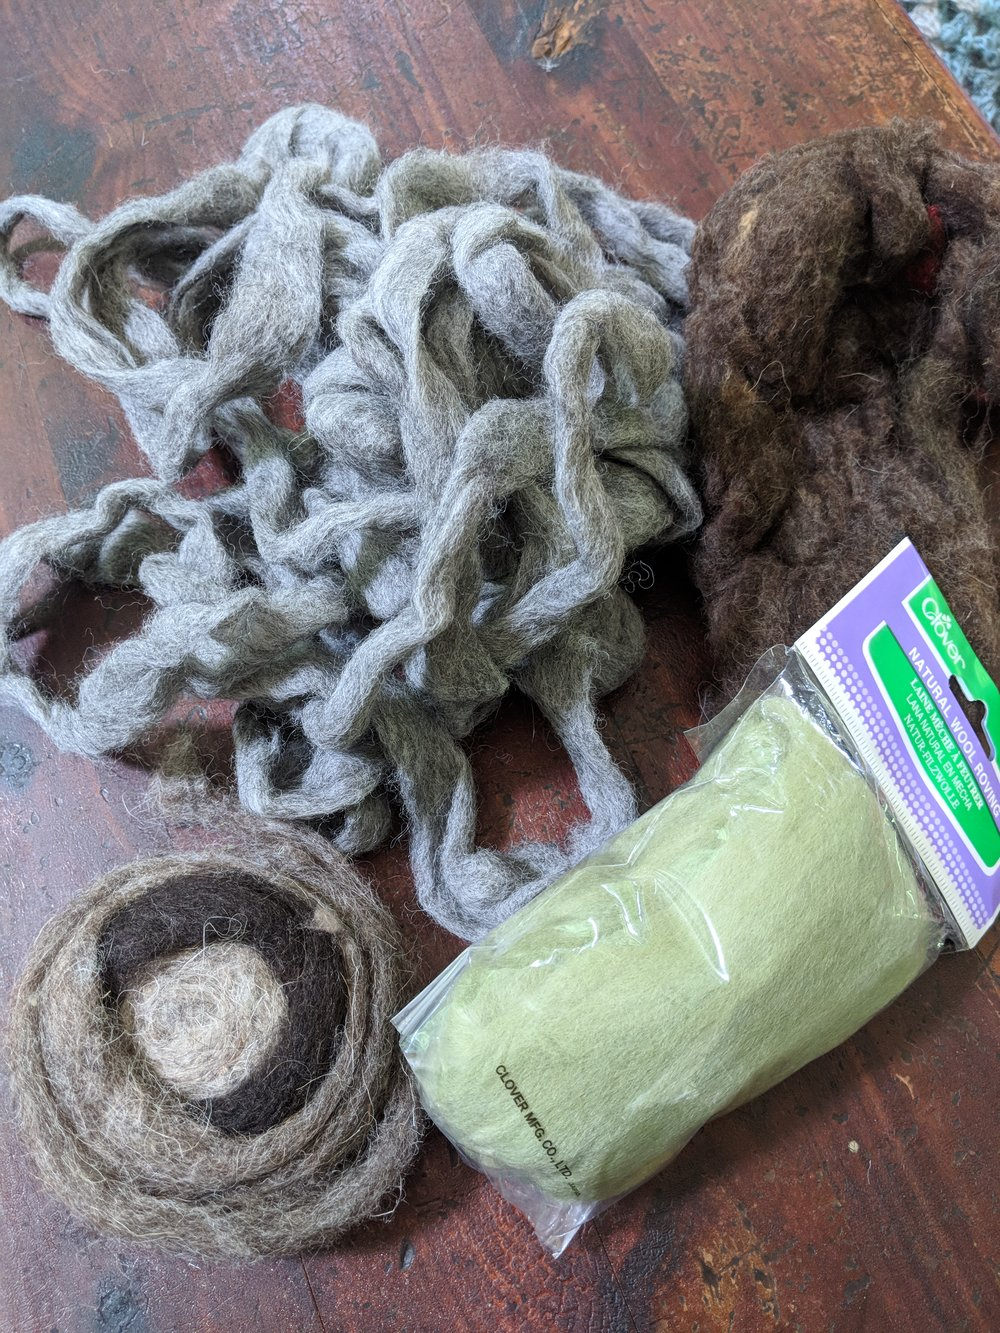 - You also have options when it comes to wool. Roving is sold in small packages at craft stores like Michael's, but you can also frequently find some at your local farmer's market.